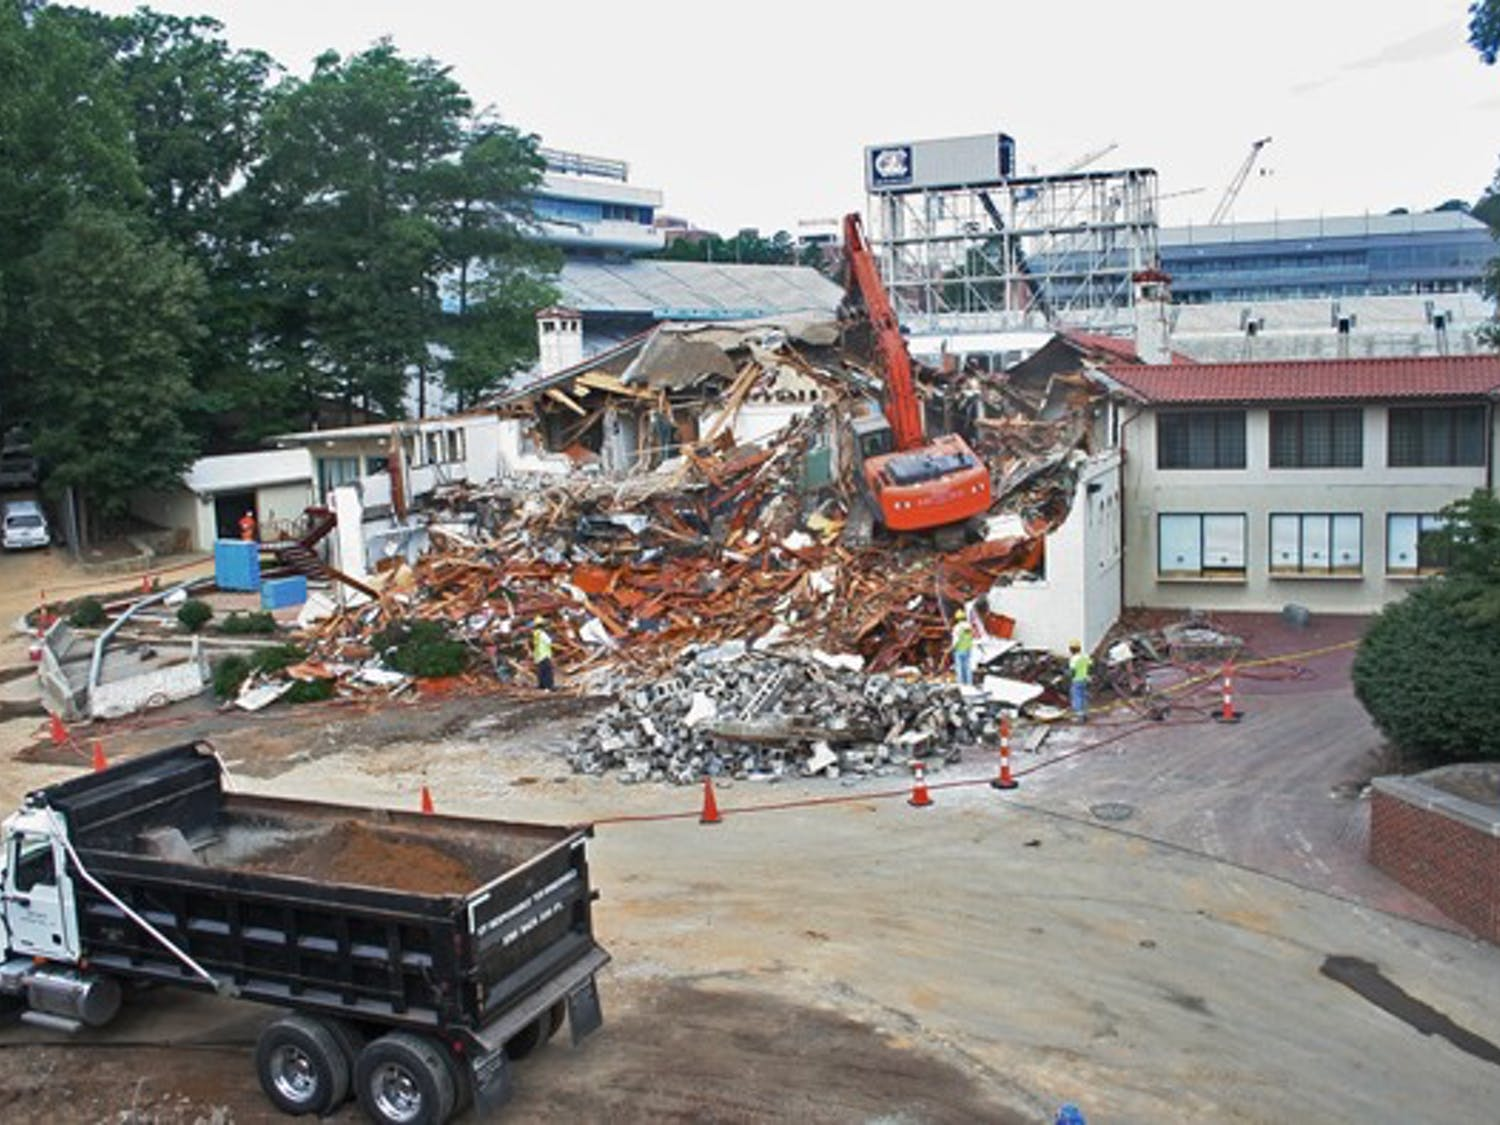 Demolition crews tear down the Kenan Fieldhouse on June 8. DTH/Robert Turner Story